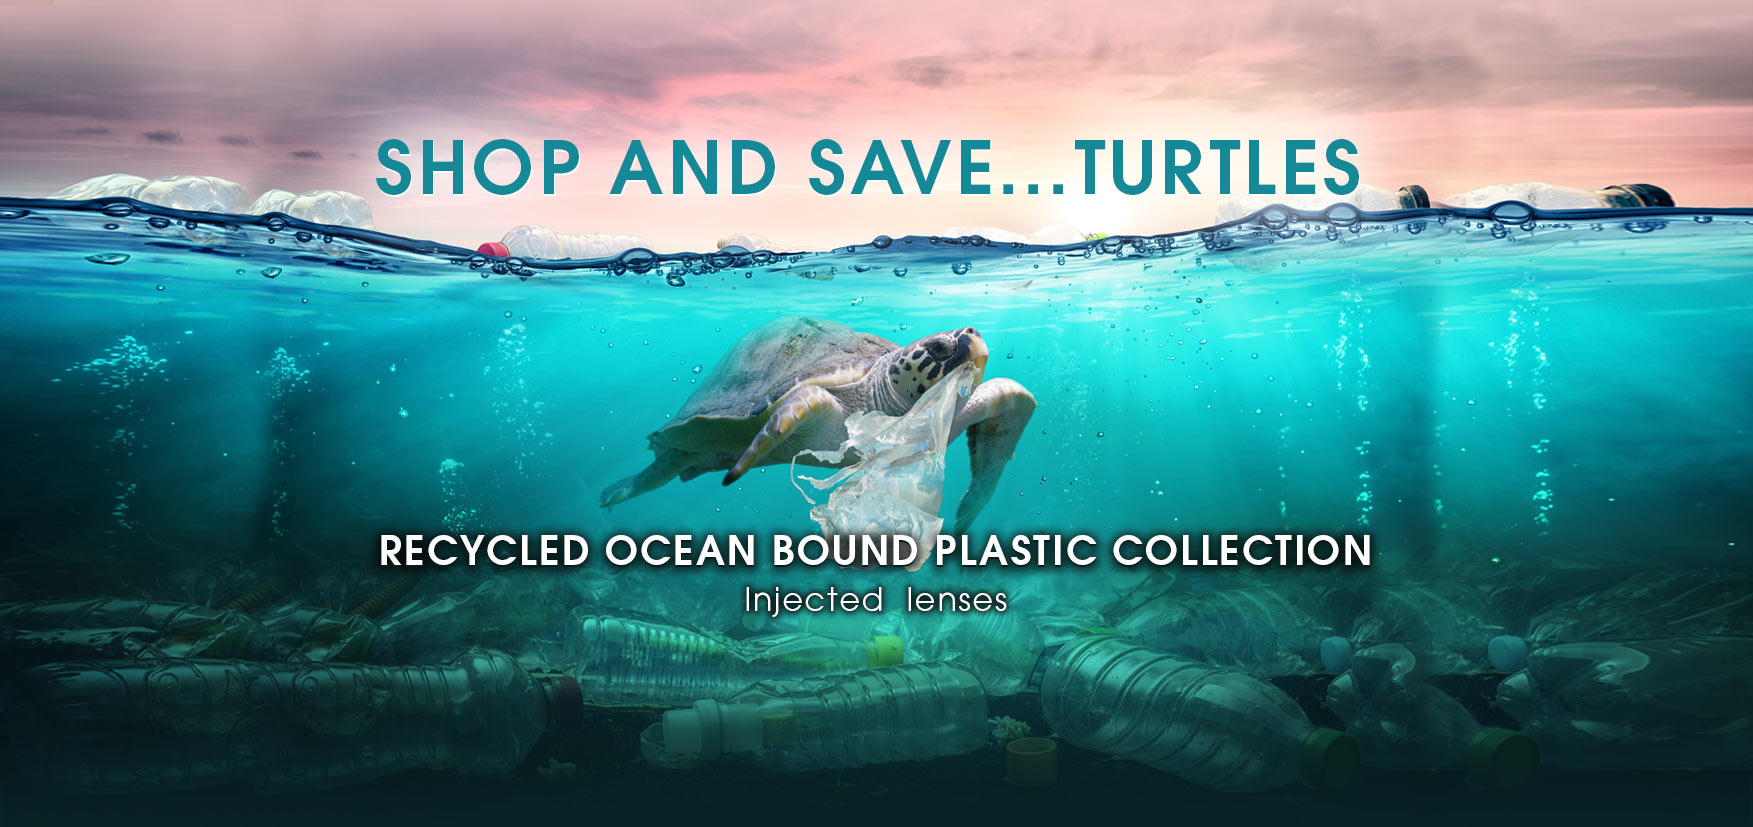 This is an image of a turtle swimming in the ocean with a plastic bag stuck in it's mouth and surround by plastic water bottles